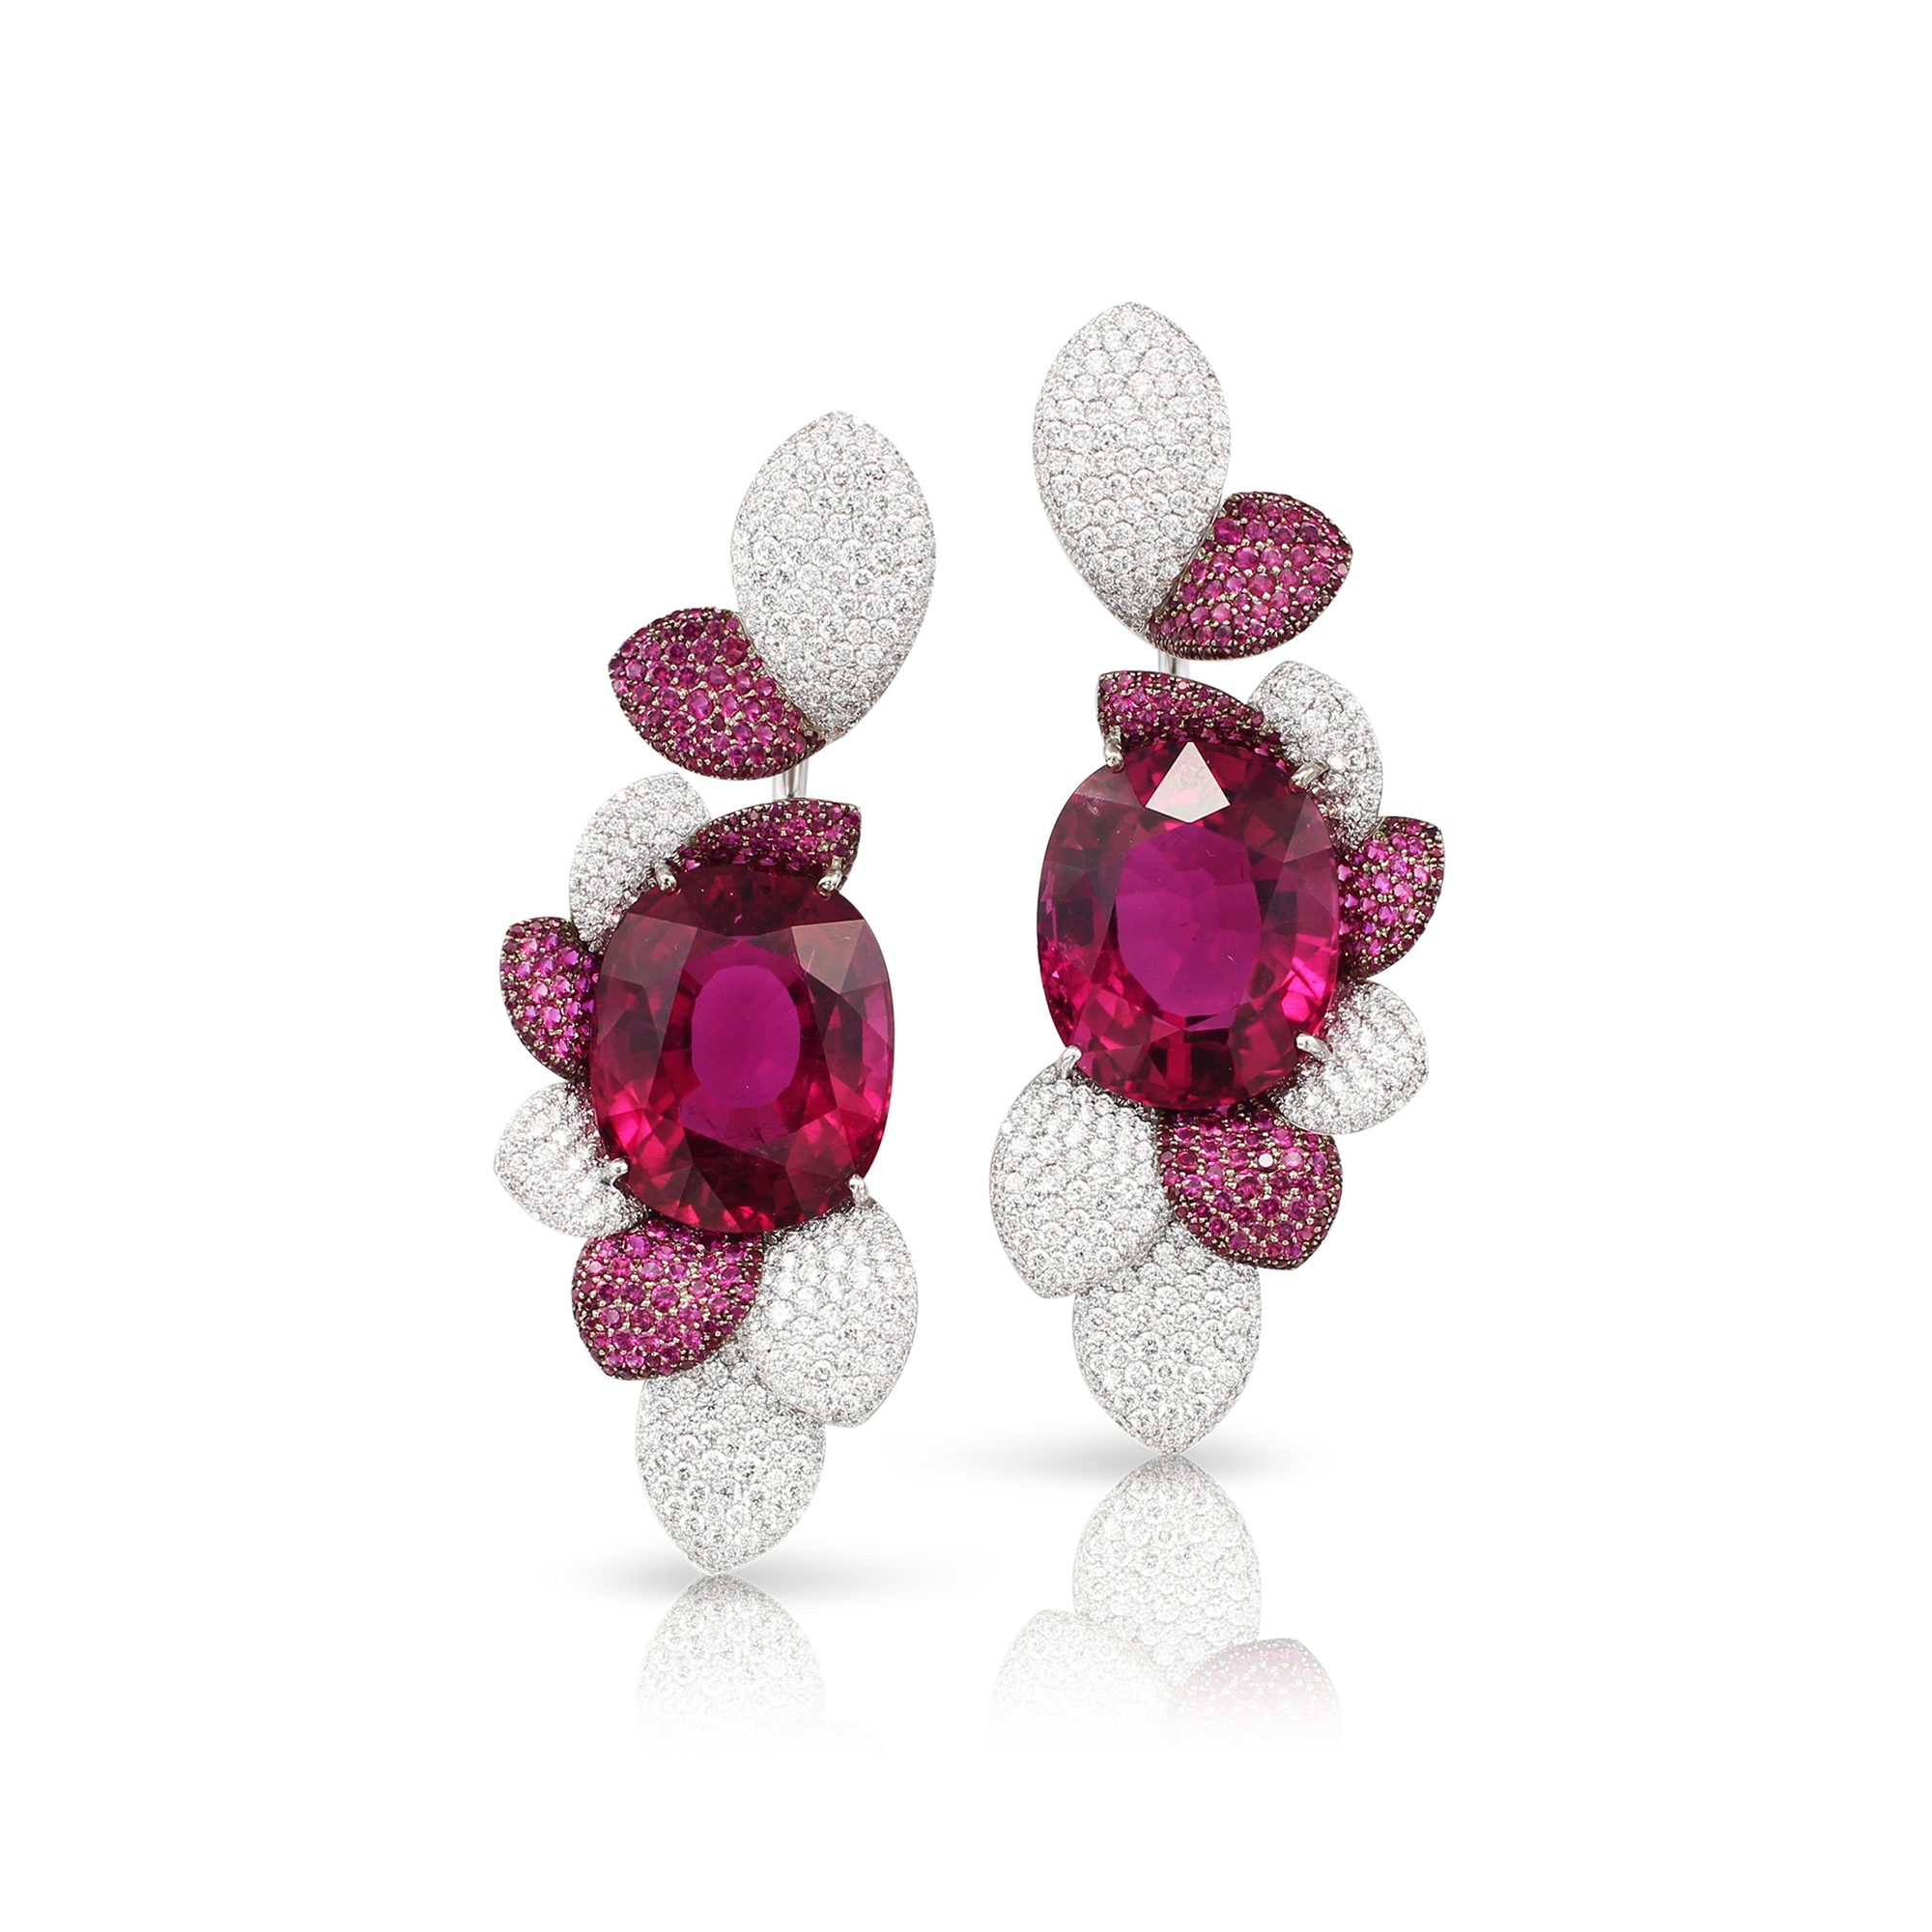 18k White Gold Giardini Vento Atelier Earrings with Rubellite, Rubies and Diamonds